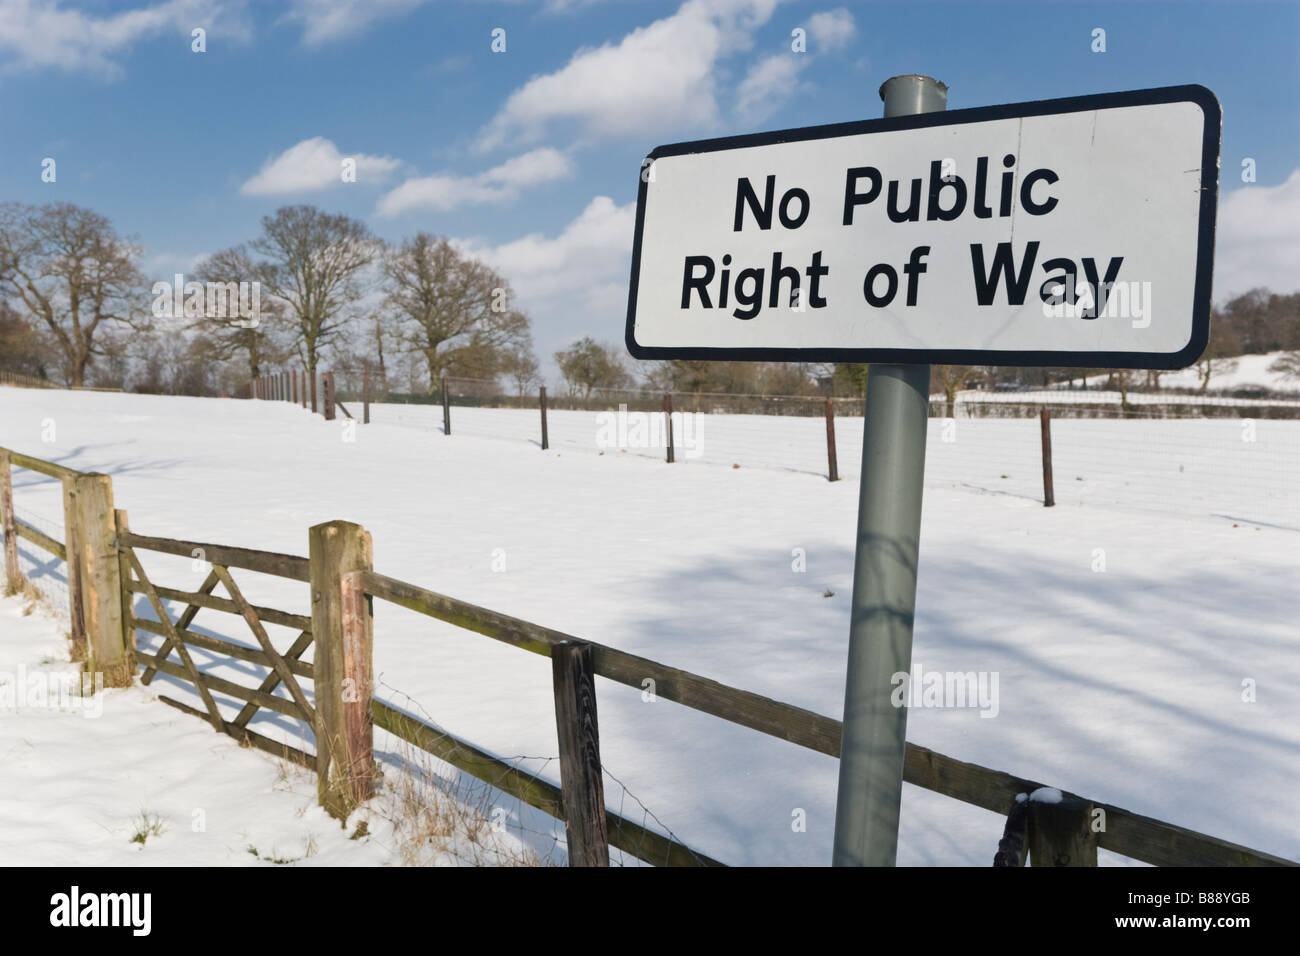 No Public Right of Way - Stock Image